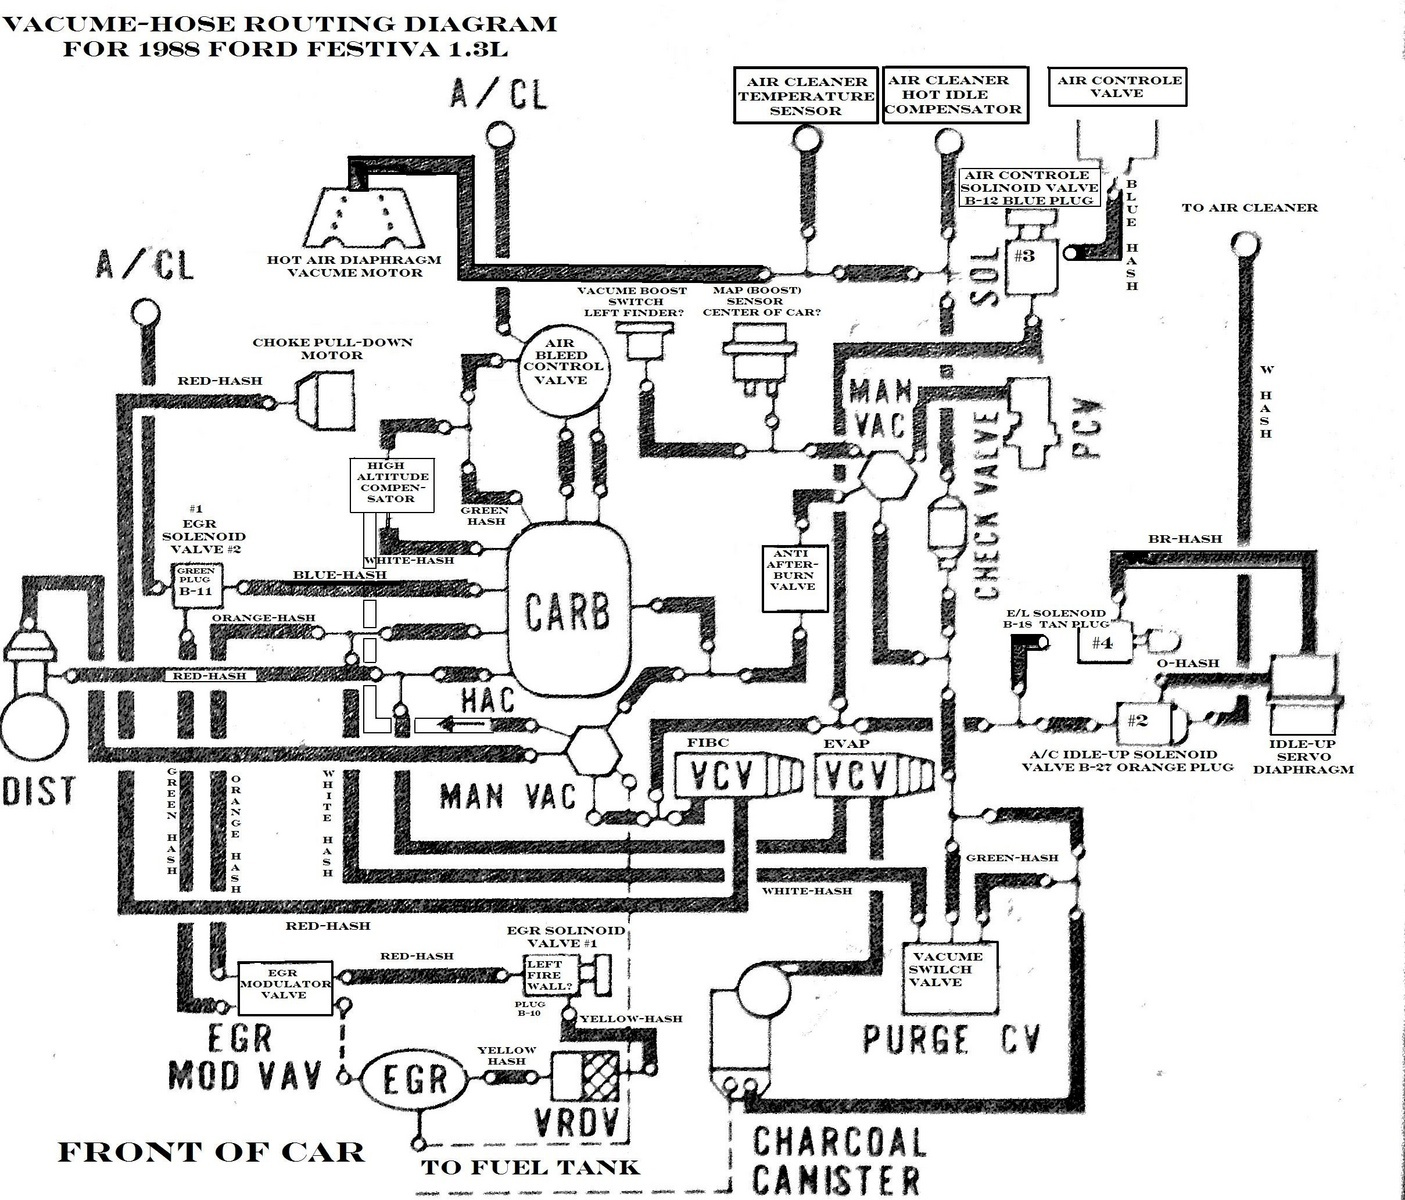 1988 Ford Mustang Lx Engine Wire Diagram Wiring Library